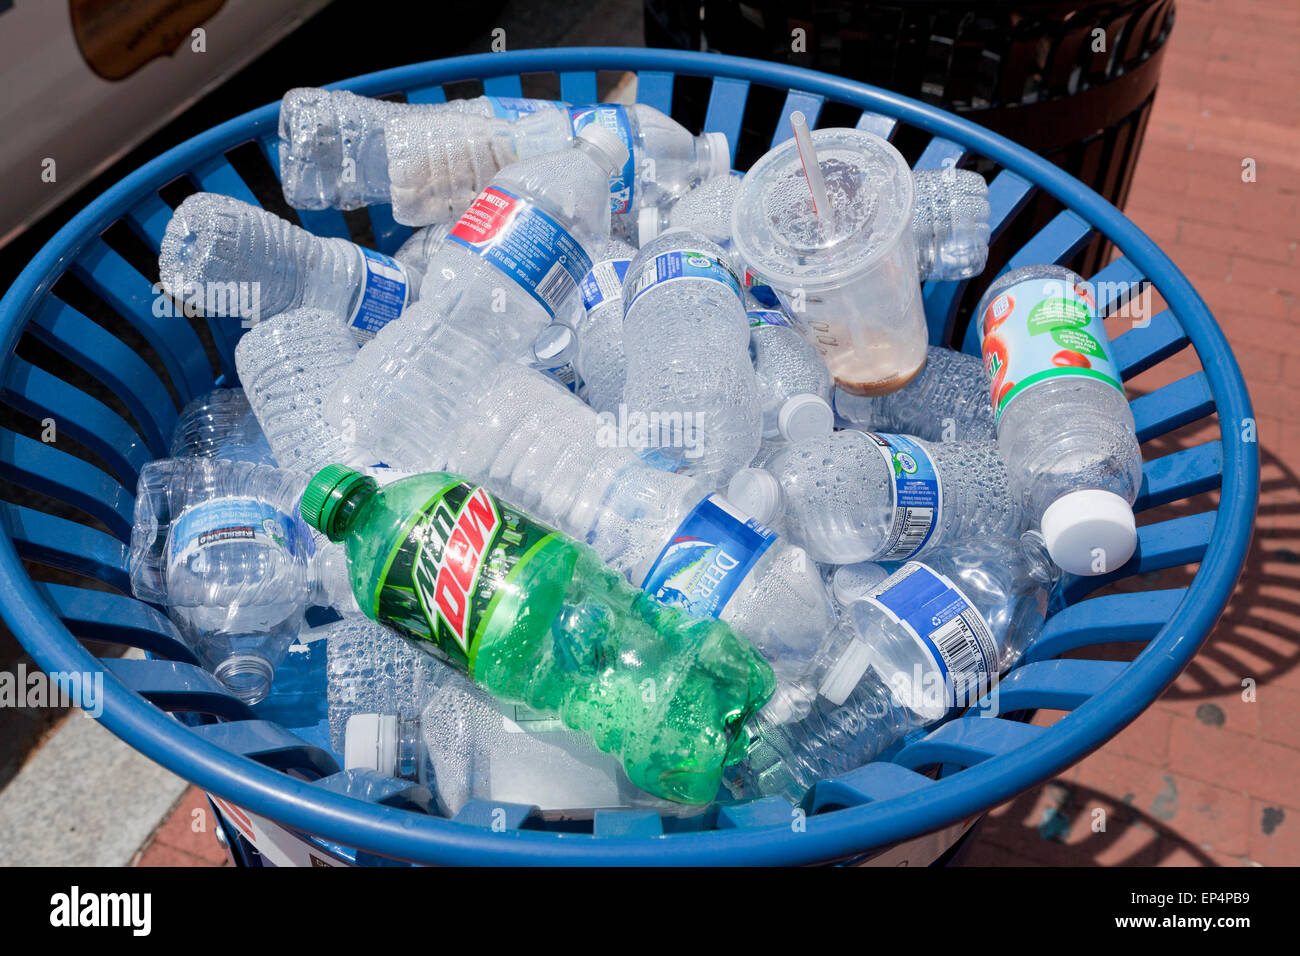 Plastic water bottles in public outdoor recycle bin - USA - Stock Image